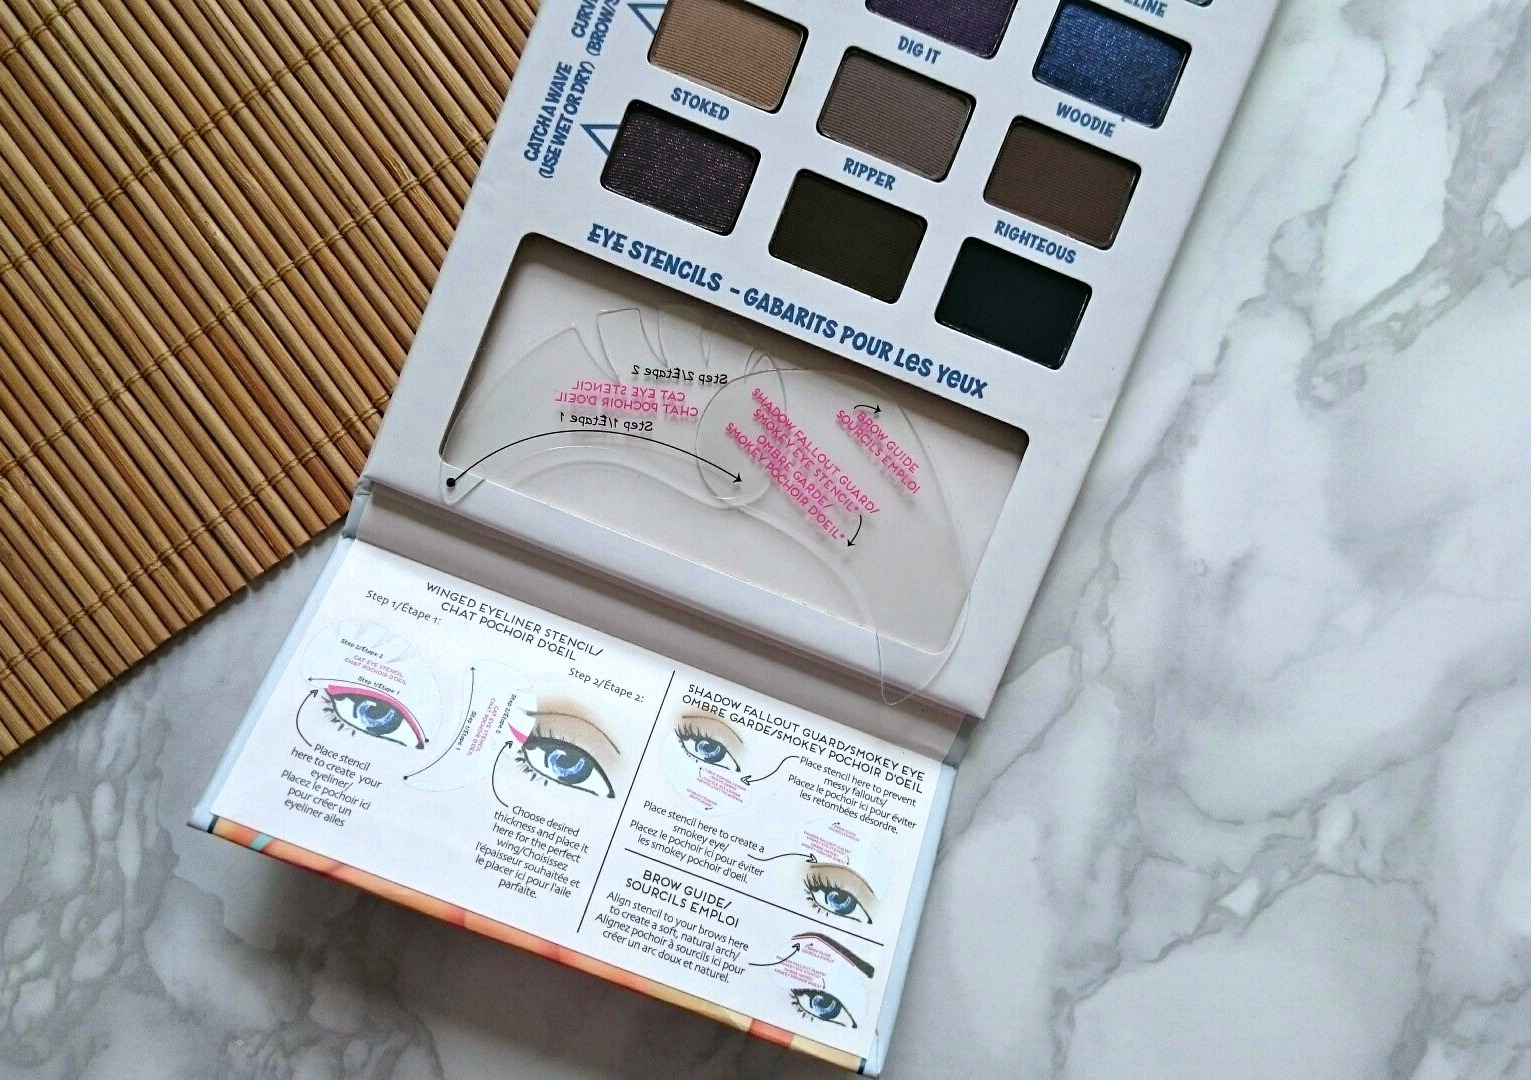 The Balm Balmsai palette